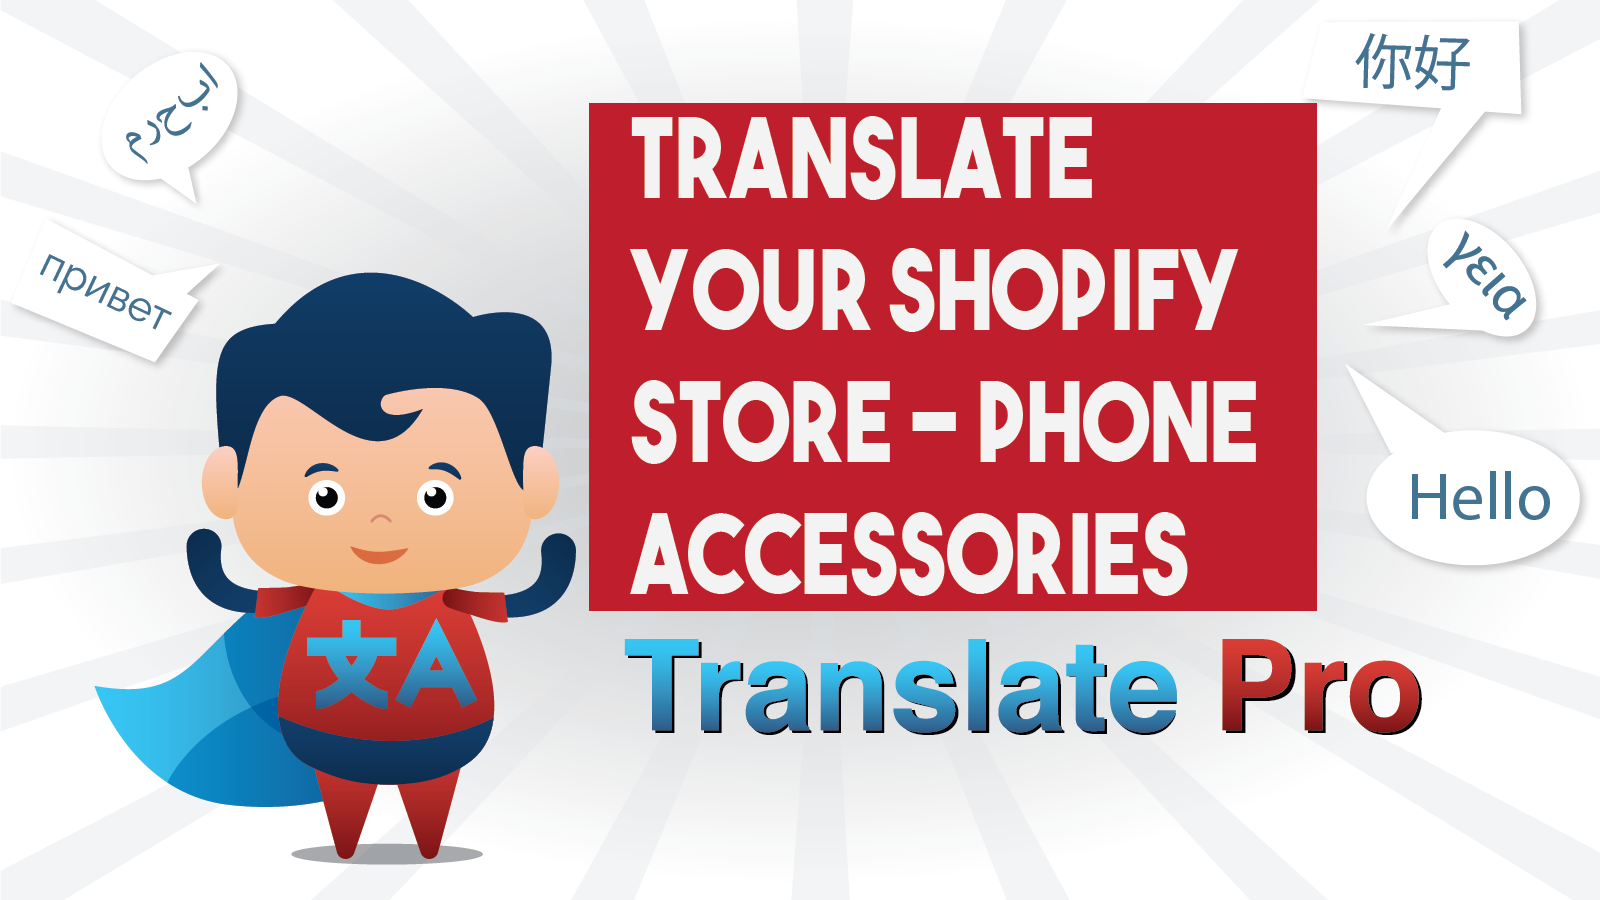 How To Translate Your Shopify Cell Phone Accessories Store